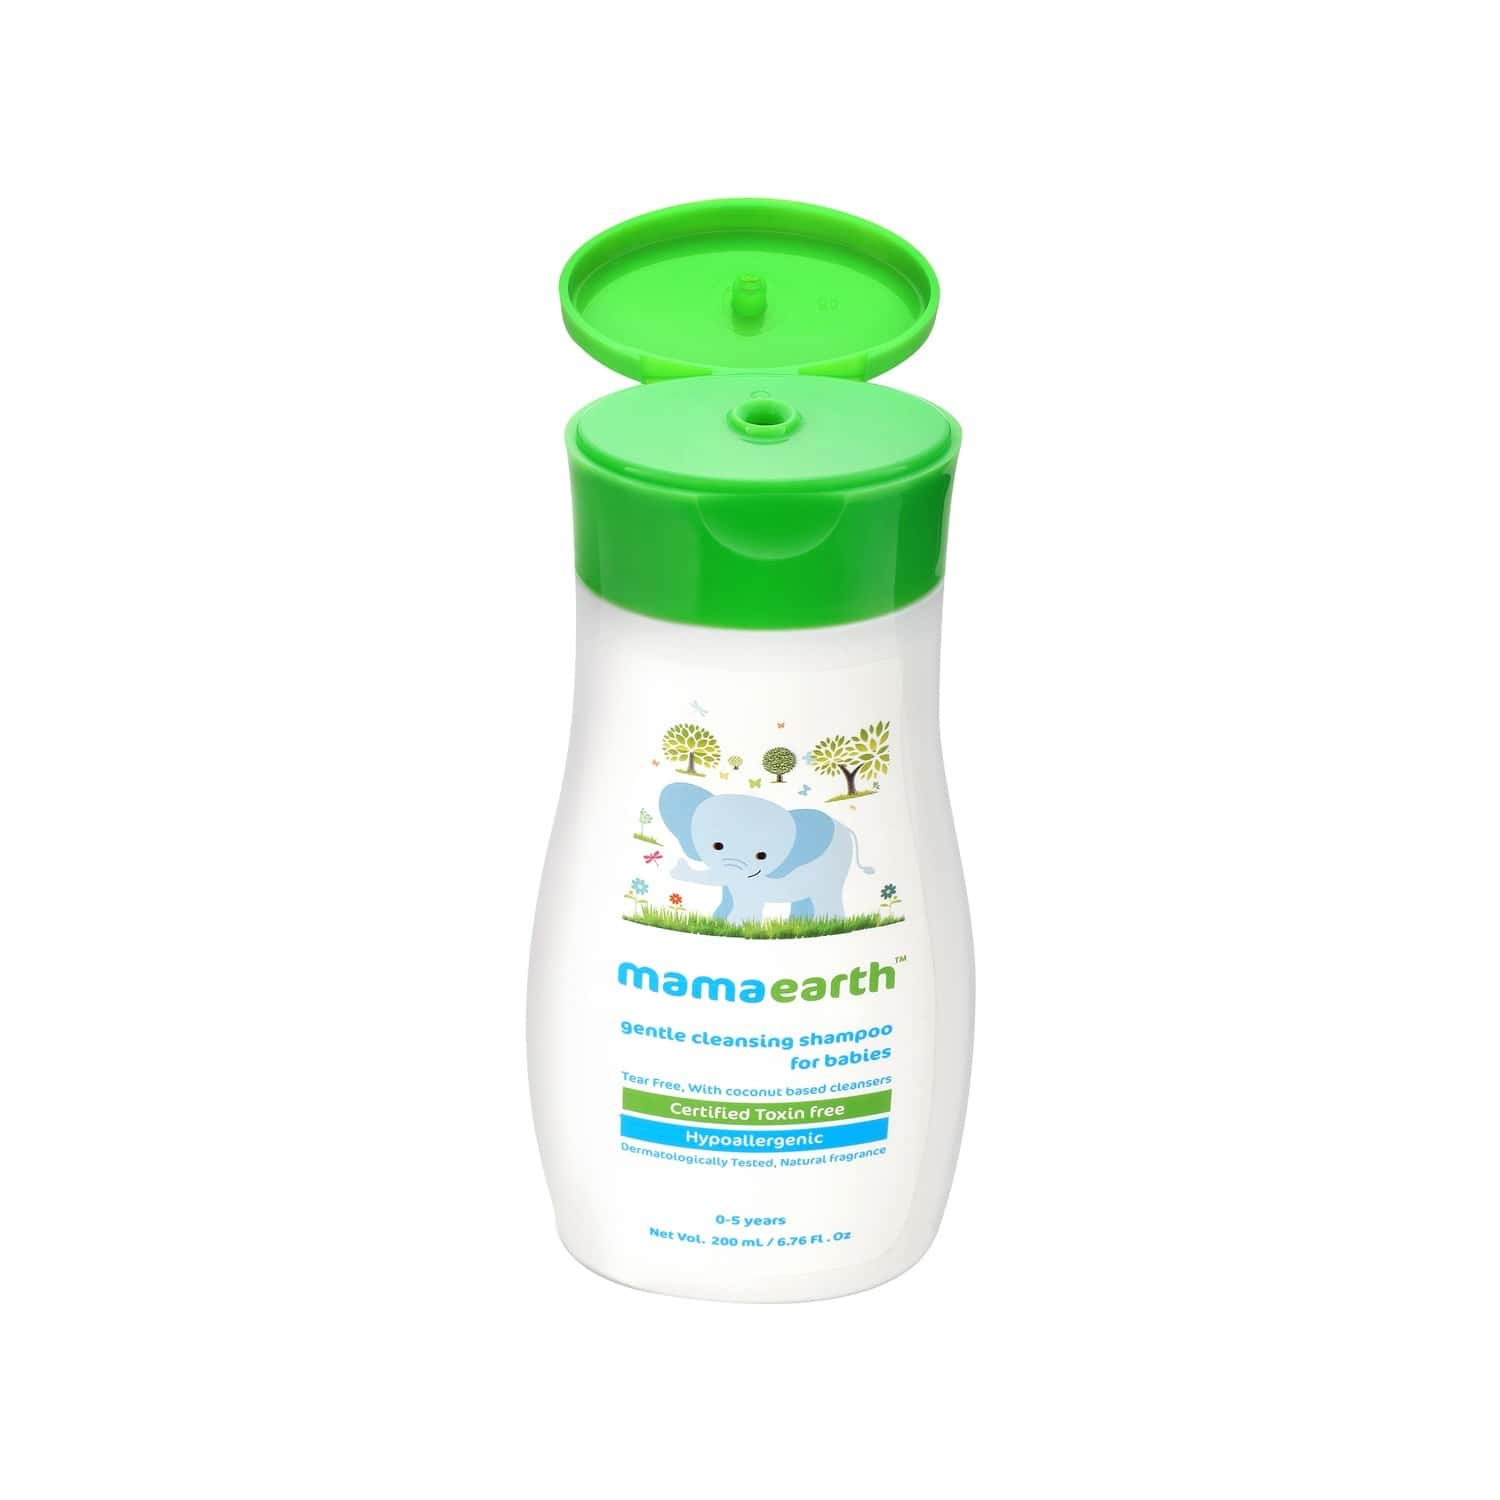 Mamaearth Gentle Cleansing Shampoo For Babies - 200ml For 0-5 Yrs